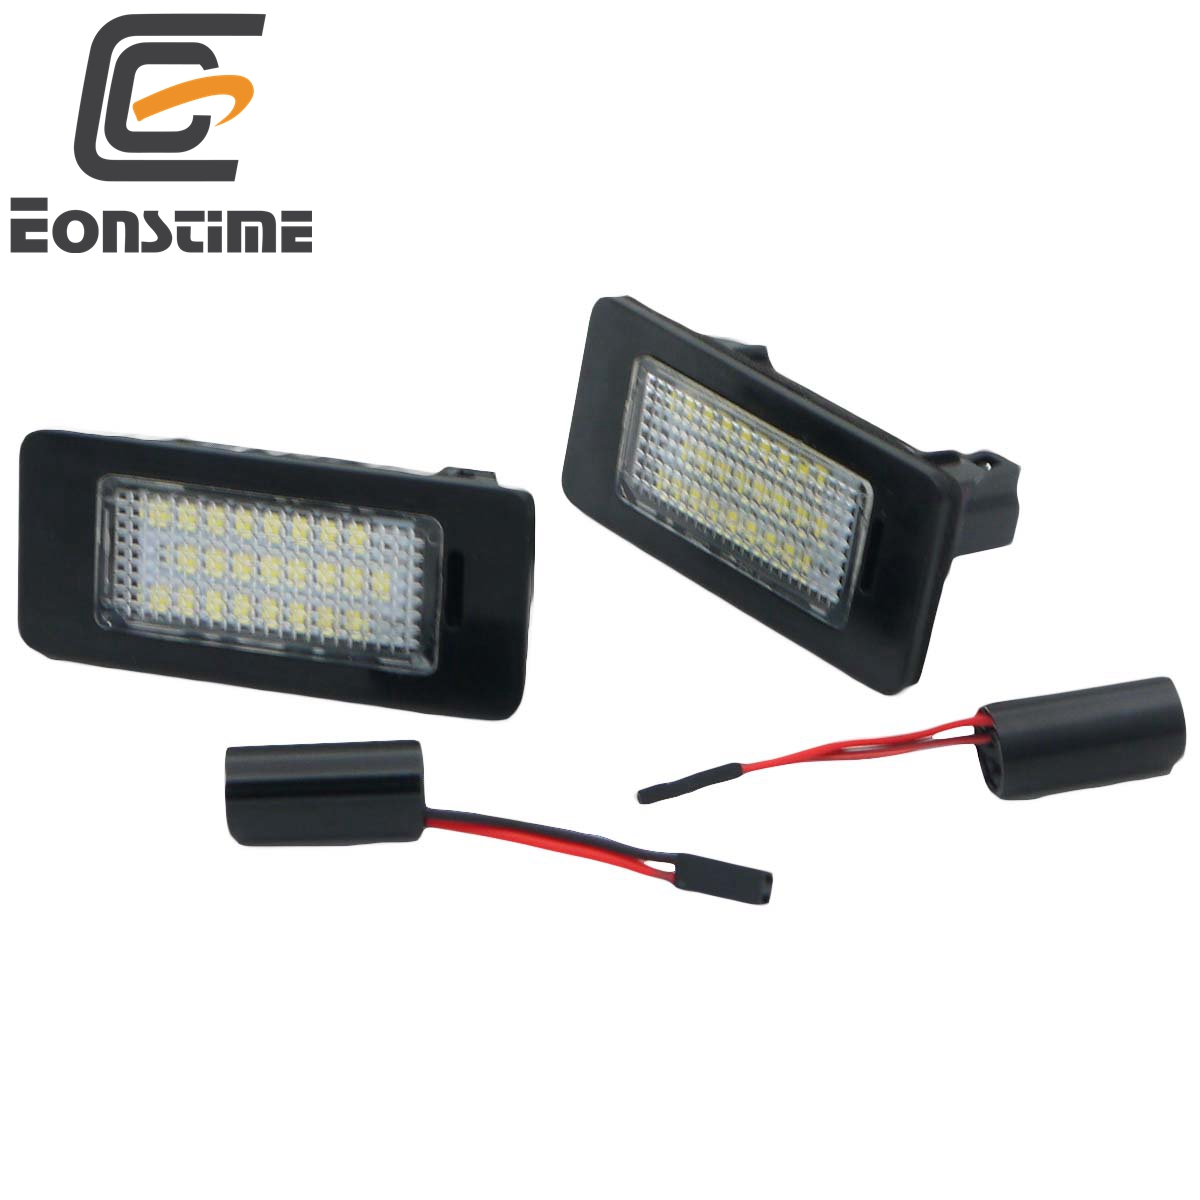 цена на Eonstime 2Pcs 18SMD LED License Plate Number Light Lamp For VW Golf VI Variant Jetta Passat Variant Sharan 7N Touran GP2 Touareg